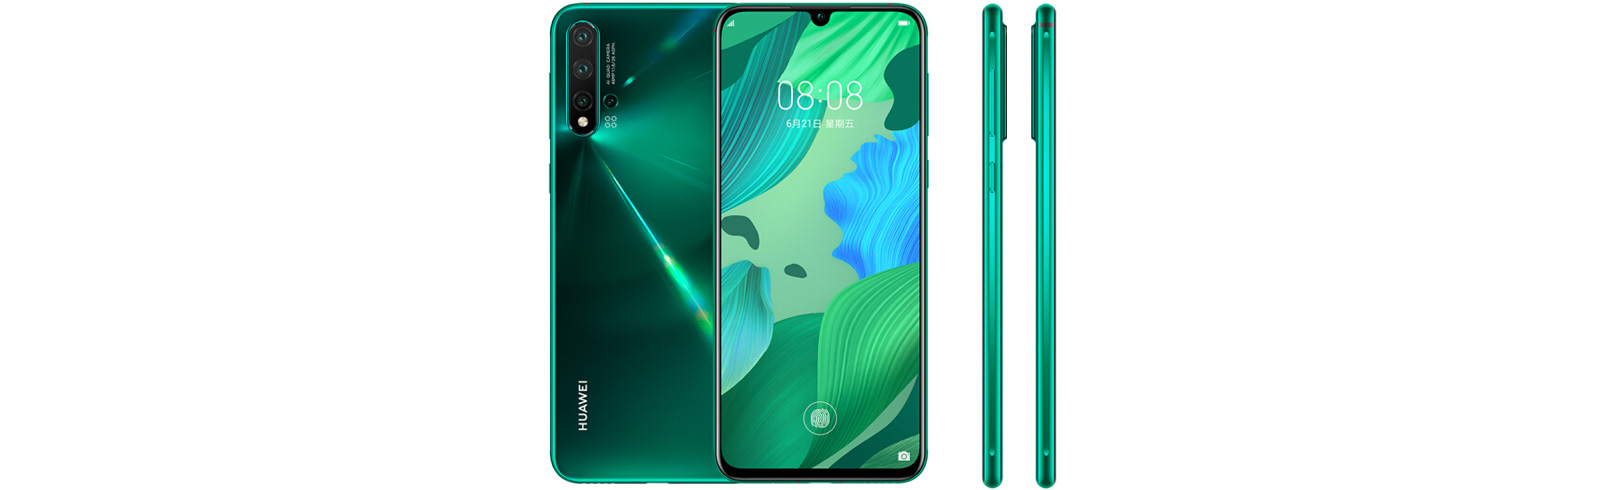 Huawei nova 5 Pro listed on JD, official photos in tow